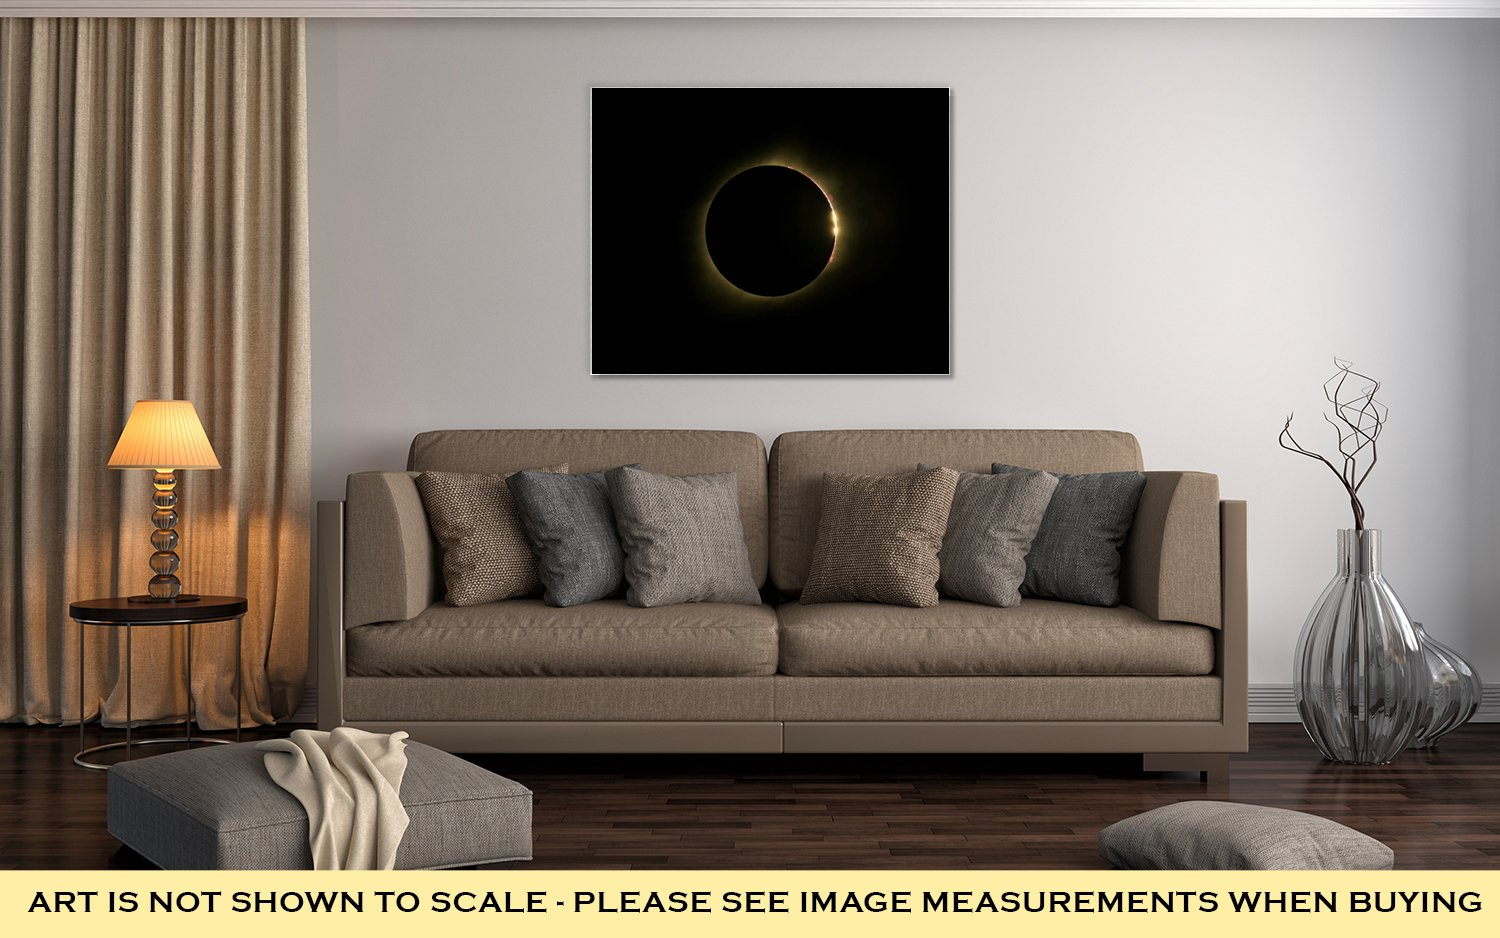 Ashley Canvas Total Solar Eclipse with Bailey Beads and Prominence, Wall Art Home Decor, Ready to Hang, Color, 16x20, AG6464623